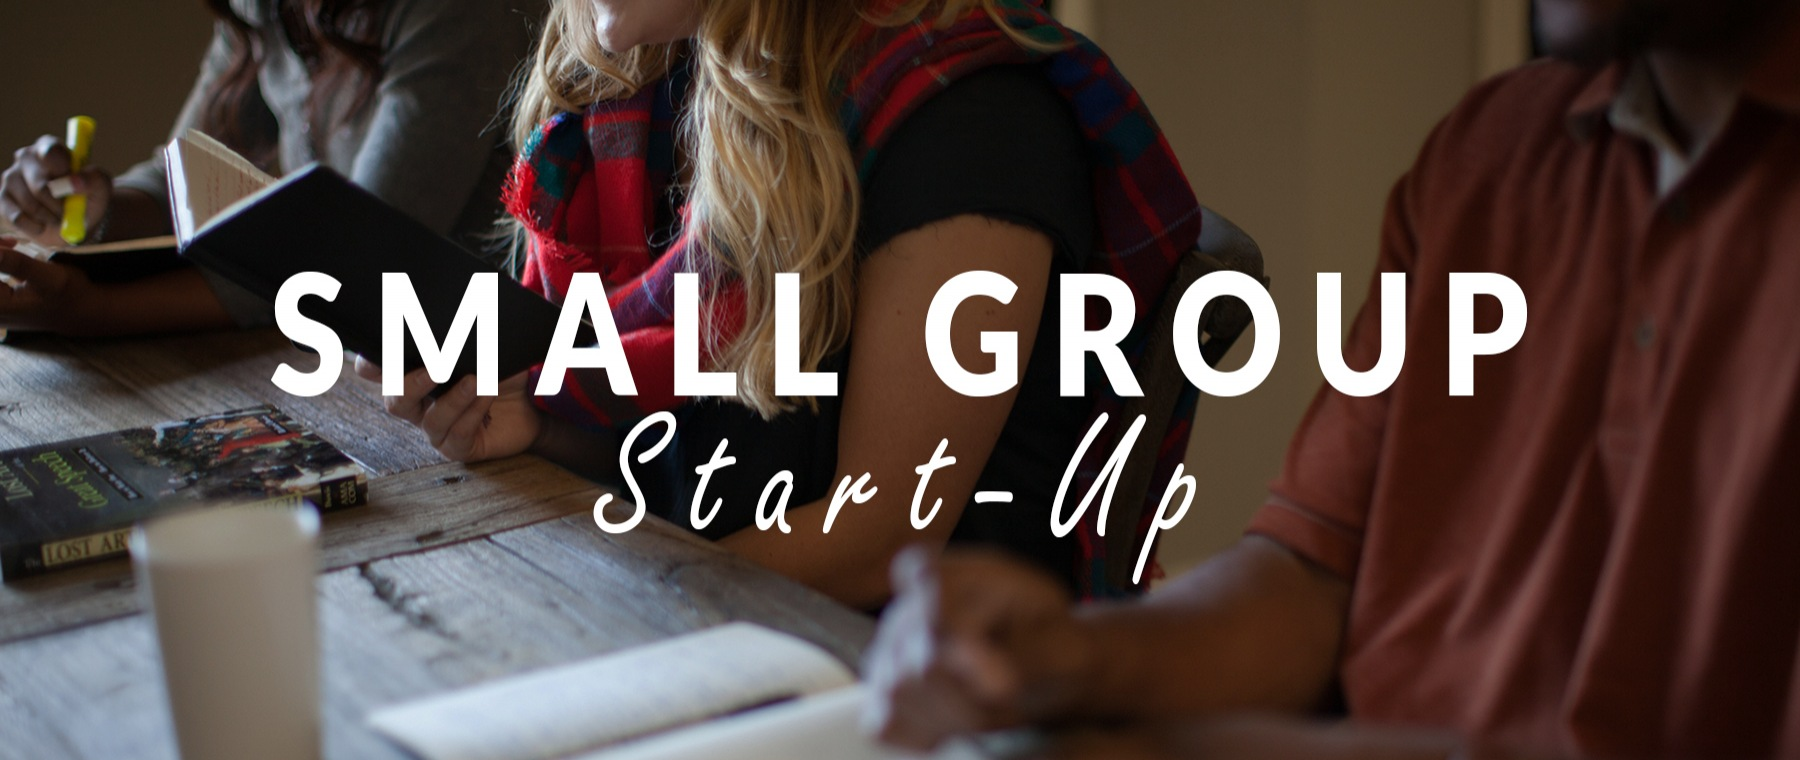 Small Group Start-Up